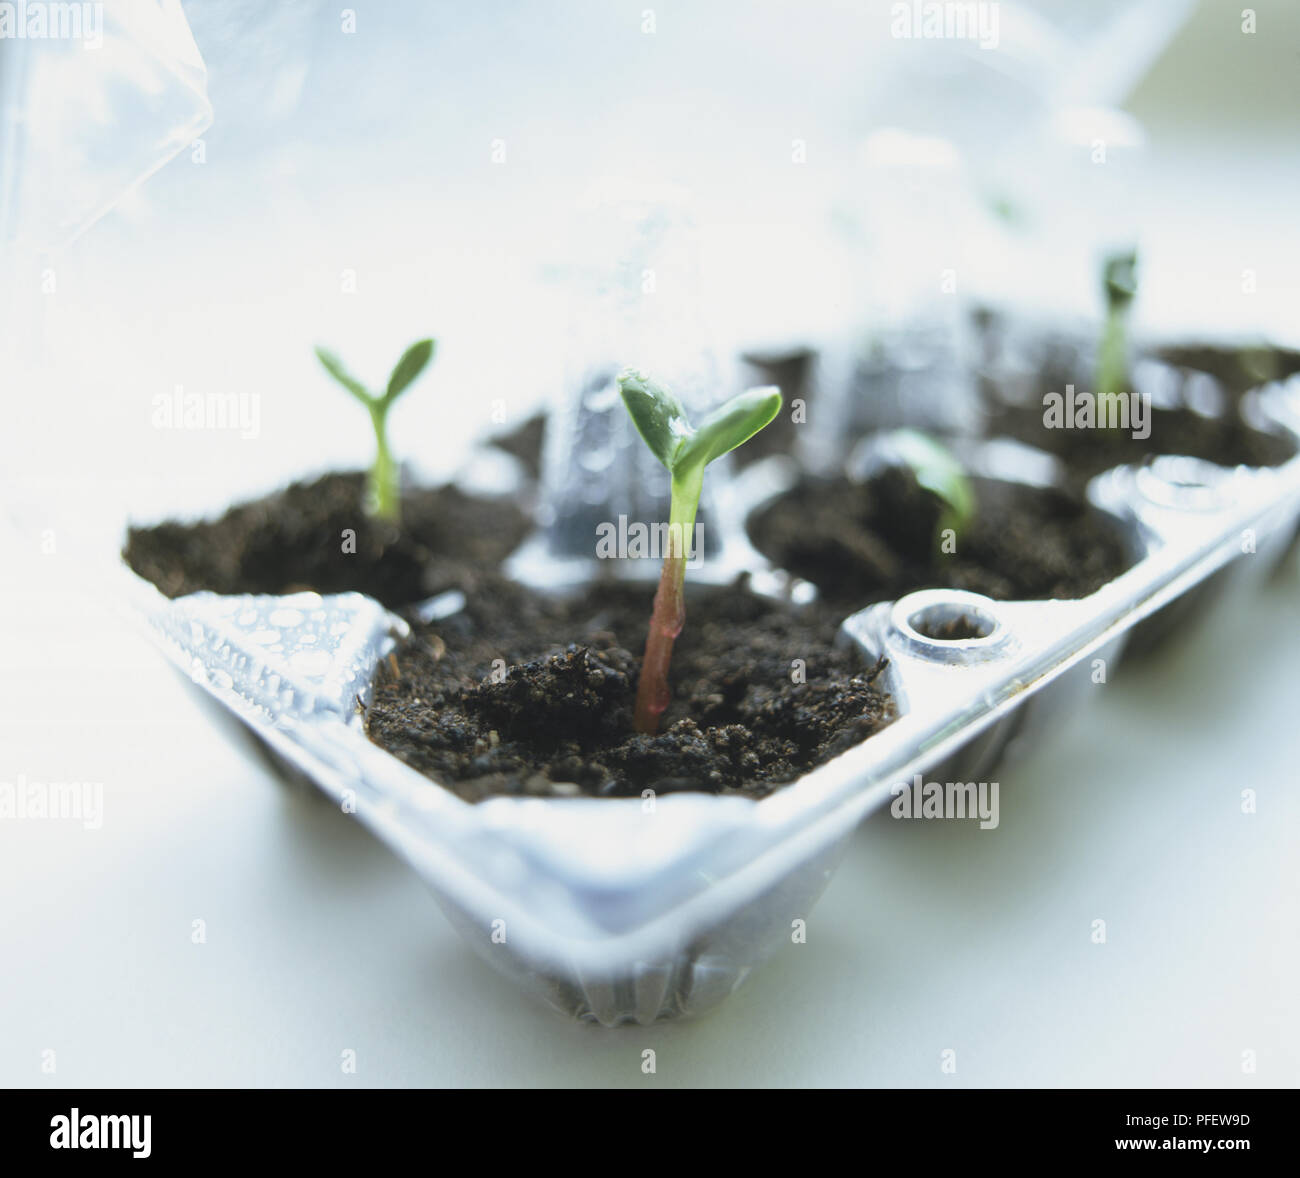 Helianthus annuus, Sunflower seedlings in wet soil in plastic egg carton Stock Photo